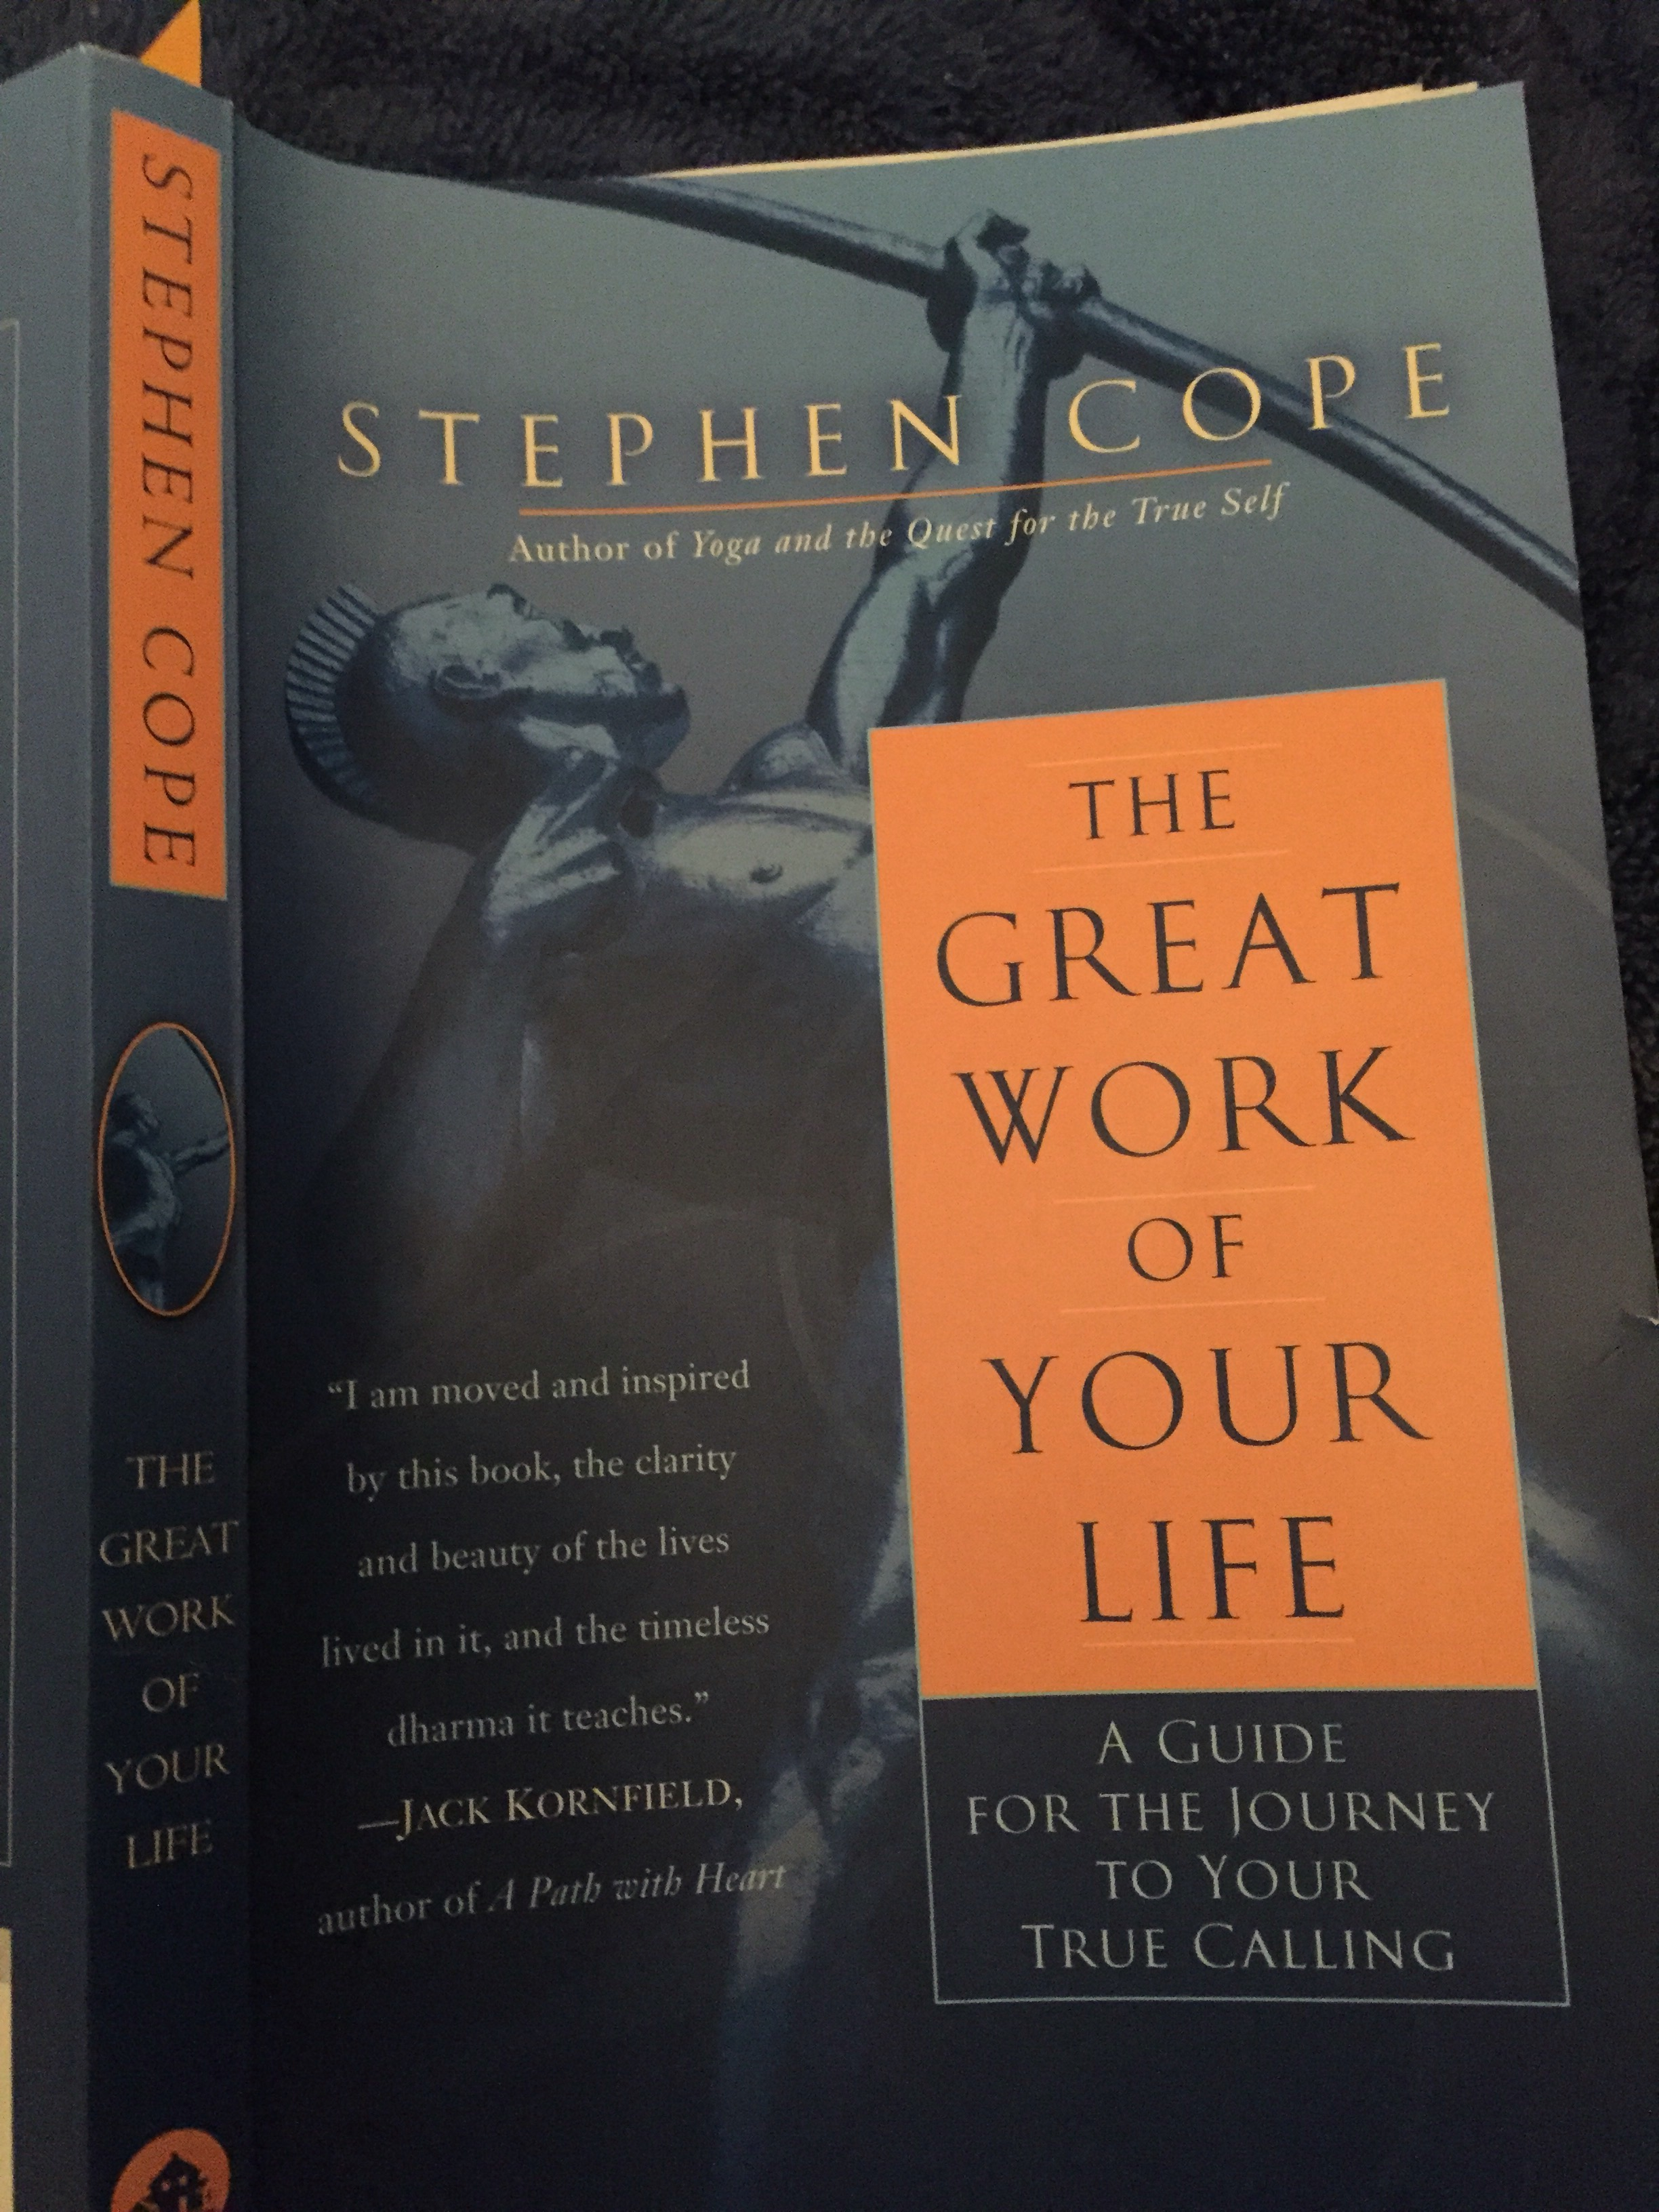 stephen cope essay press I must be an active participant in the development of friendship, says kripalu's stephen cope, author of soul friends.